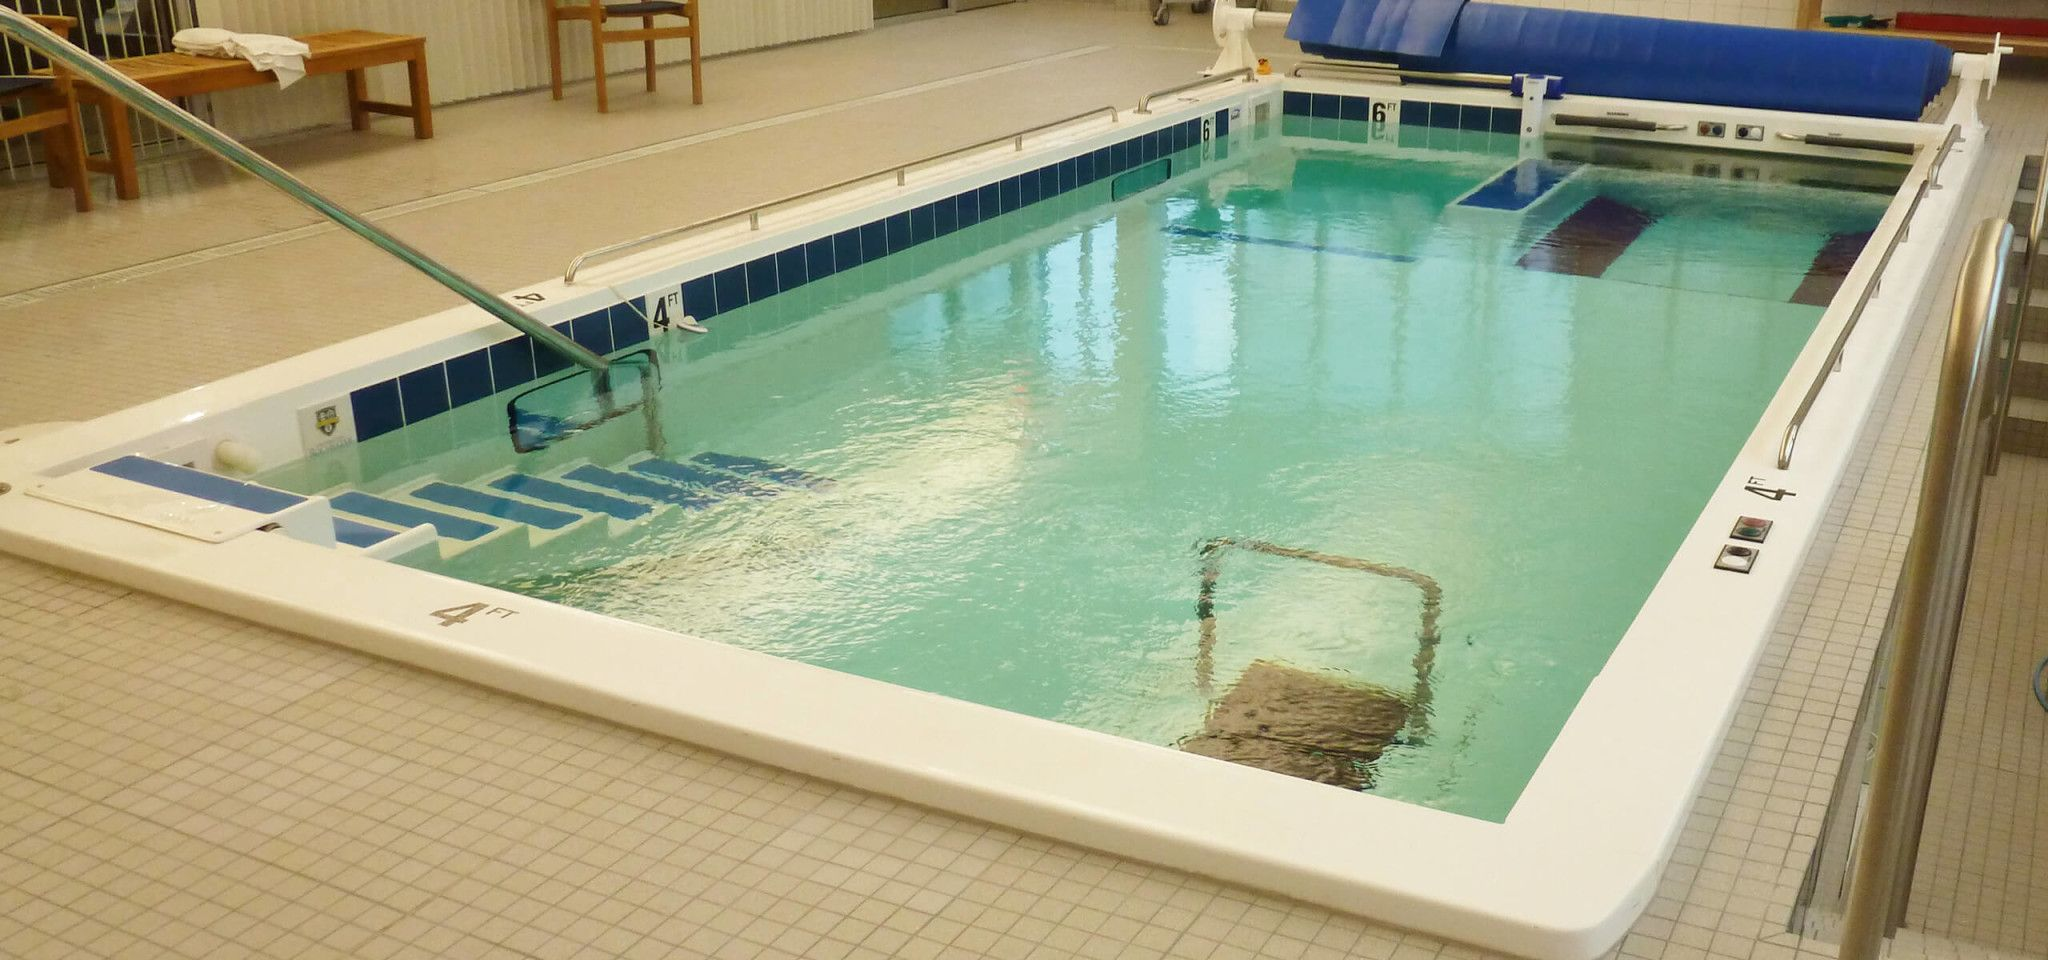 1000 Series Therapy Pool For Rehabilitation Recovery And Exercise